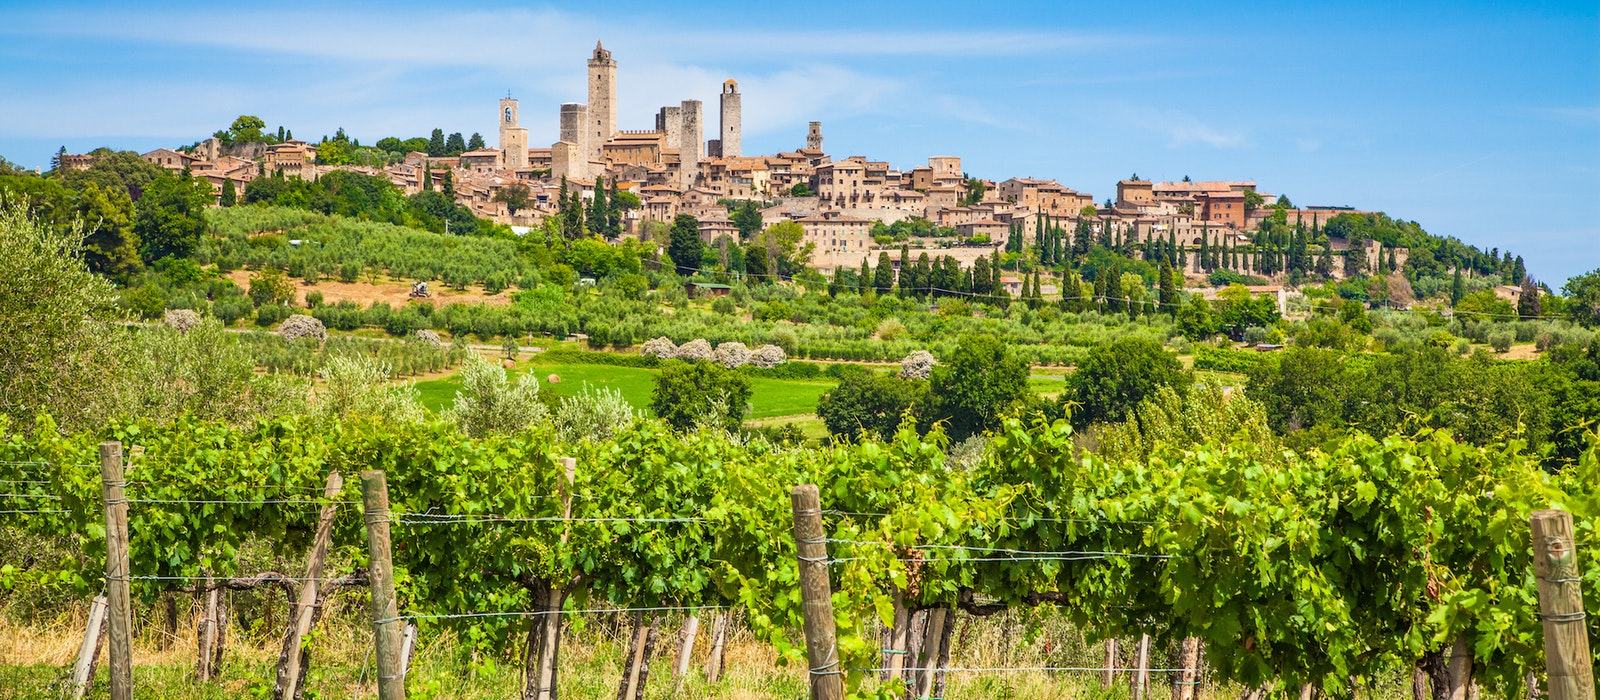 """UNESCO considers the historic center of San Gimignano, a 13th-century hilltop town in Tuscany, to be a """"cultural site of exceptional value"""" due to its well-preserved medieval architecture."""